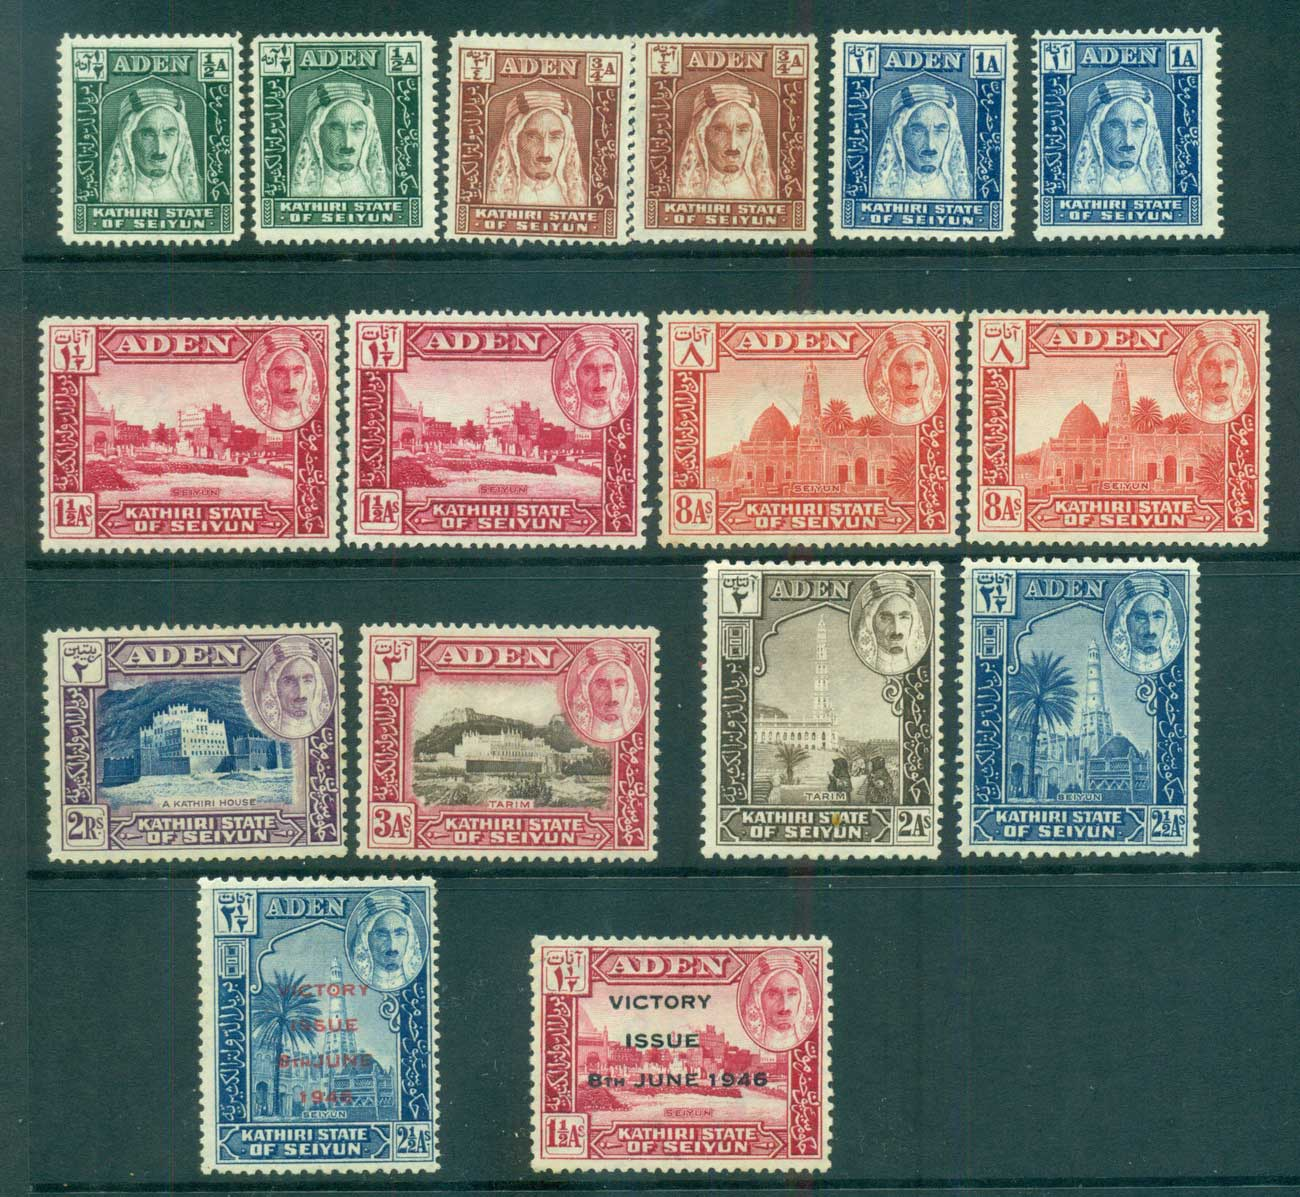 Aden Kathiri State of Seiyun 1942 Assorted Oddments MLH lot68150